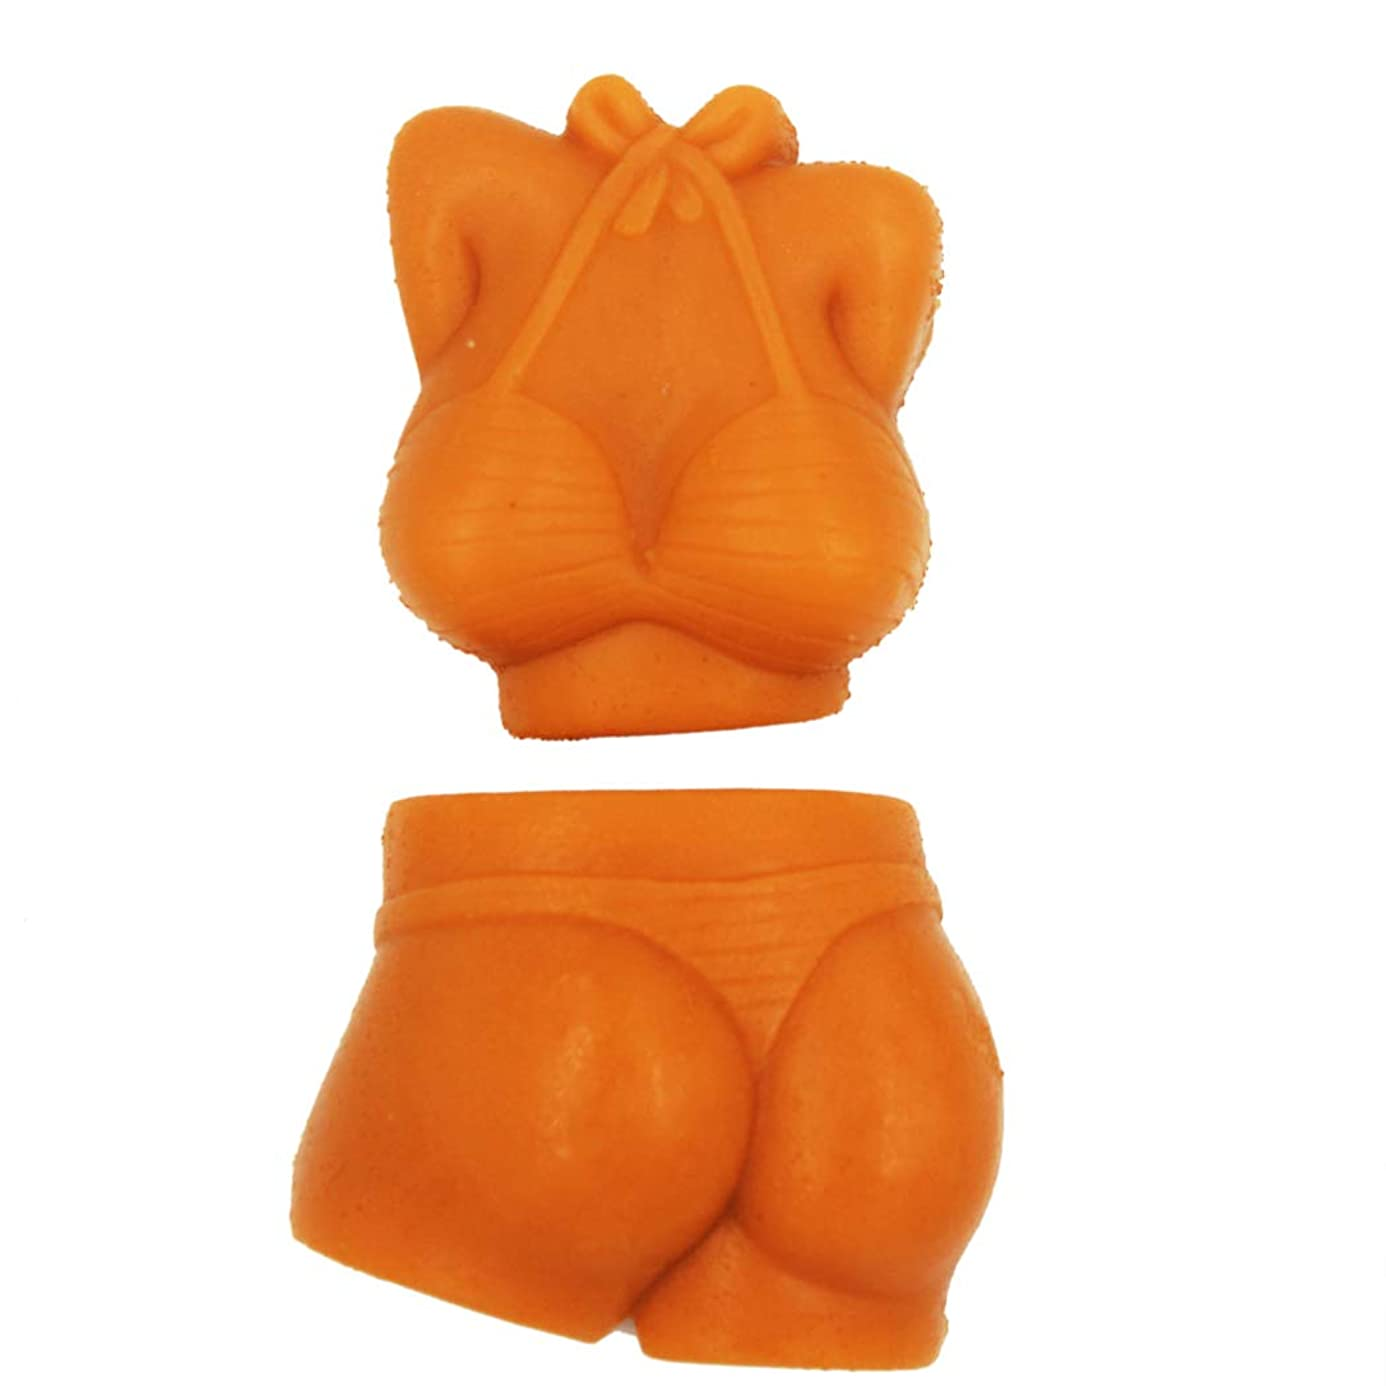 Longzang Soap Molds Sexy Bikini Set of 2 Craft Art Silicone Soap Mold Craft Molds DIY Handmade soap molds (S143-S144) nwy0554545